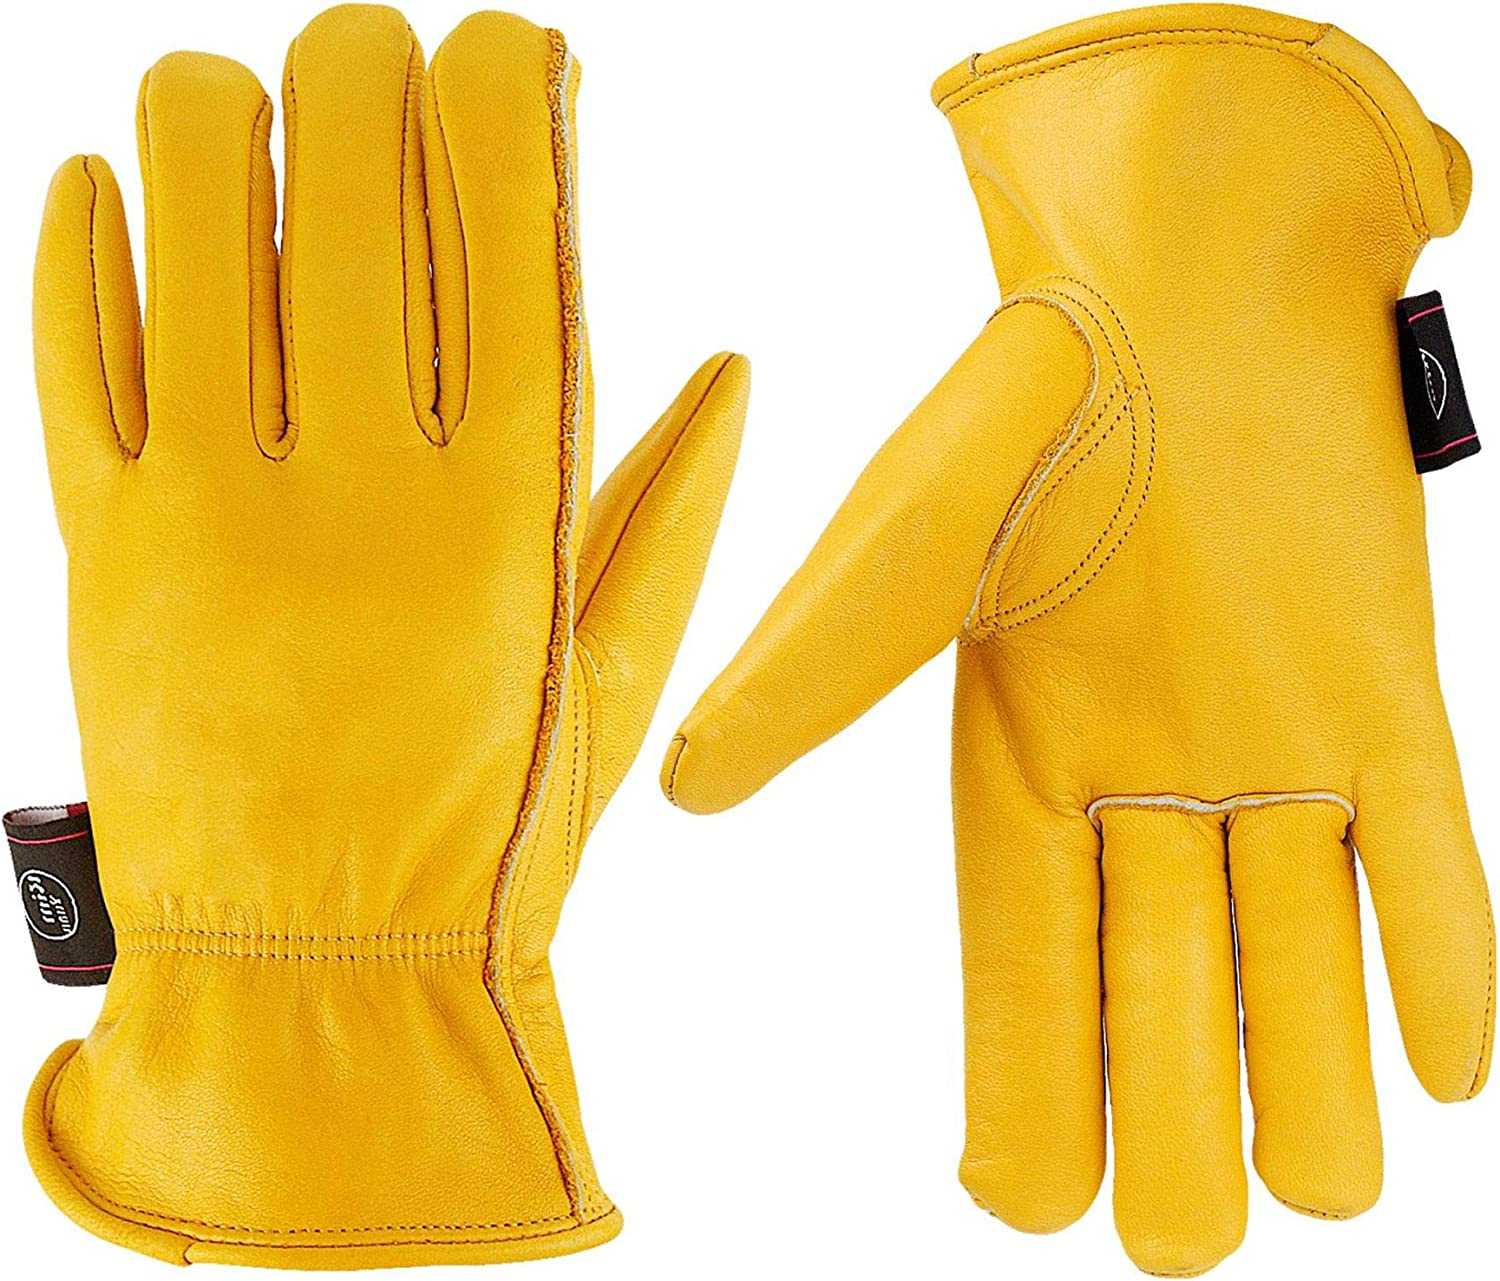 KIM YUAN Leather Work Tucson Mall Clearance SALE! Limited time! Gloves Gardening for Const Cutting Perfect